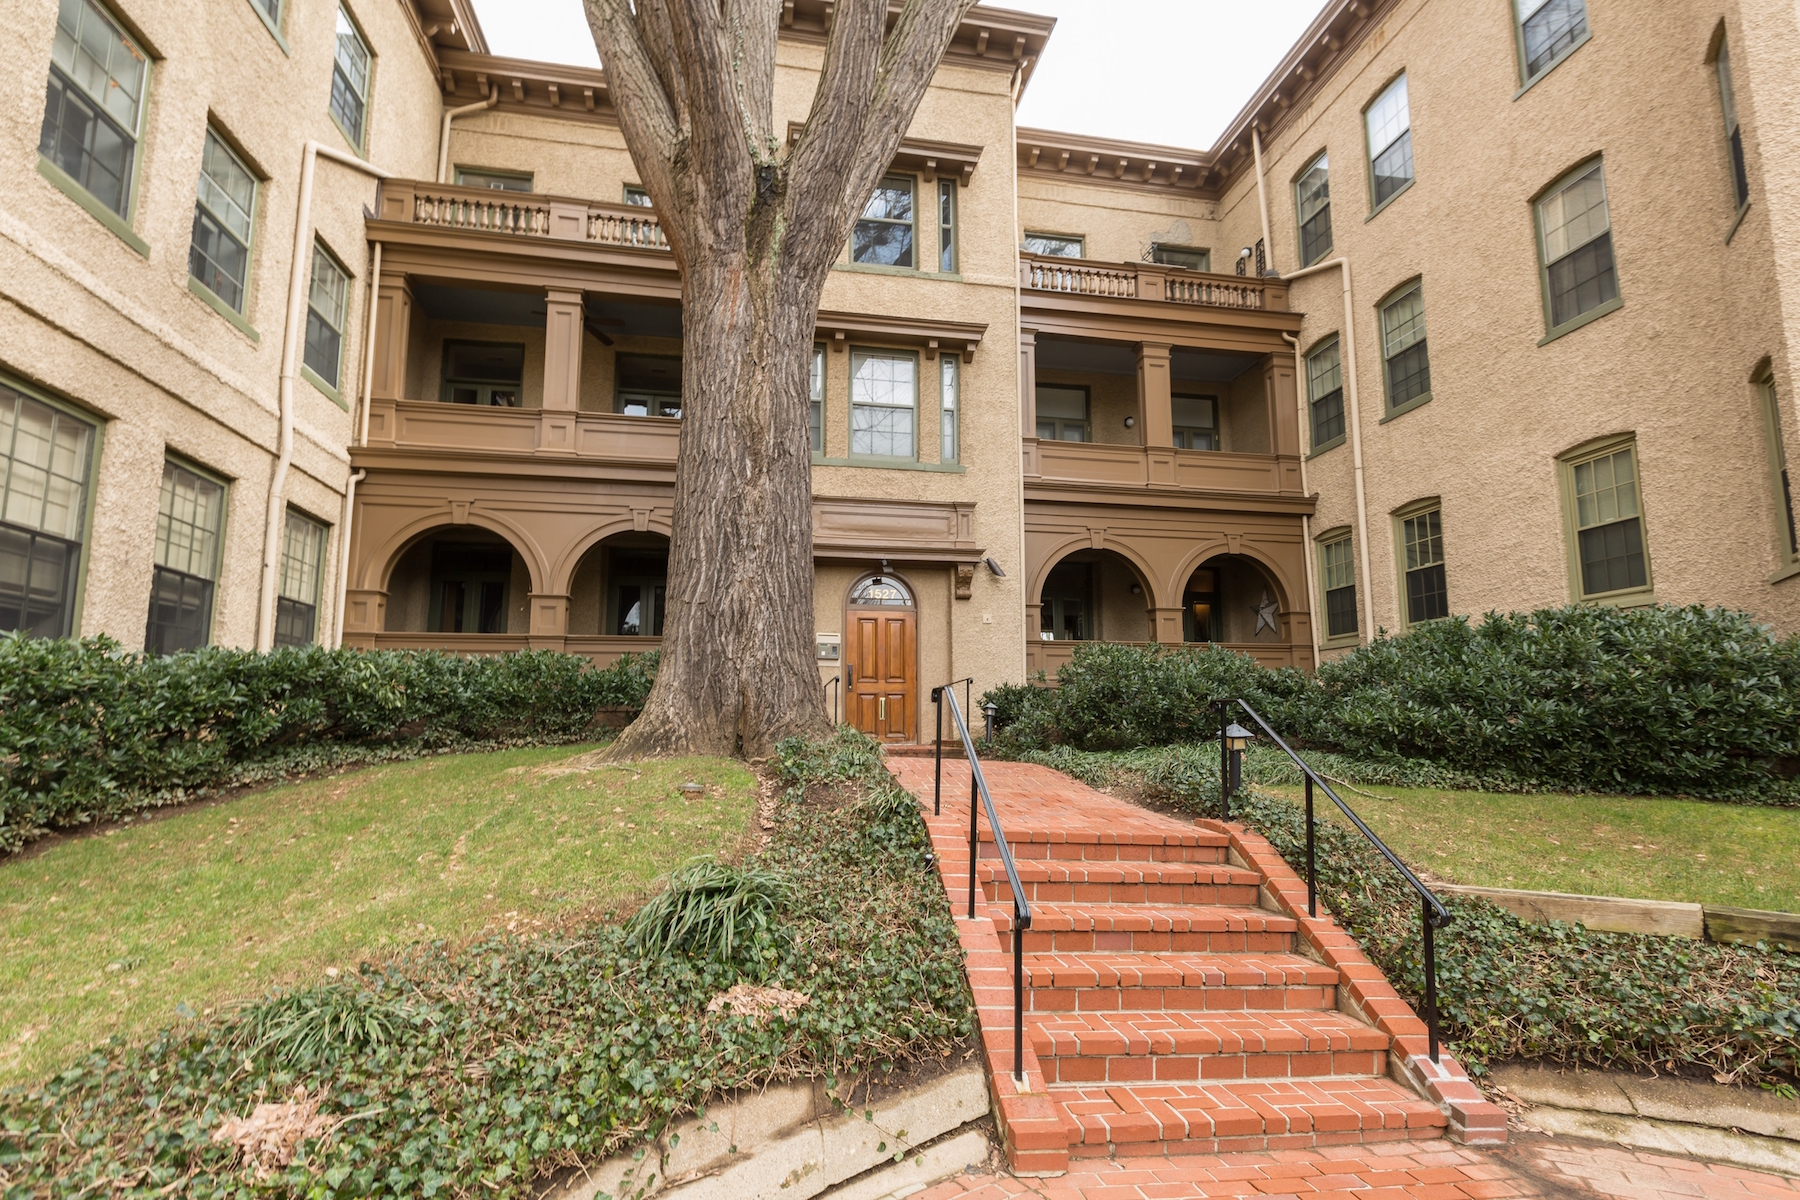 Additional photo for property listing at Rarely Available: Historic Georgetown Condominium 1527 30th Street Nw B21 Washington, 컬럼비아주 20007 미국